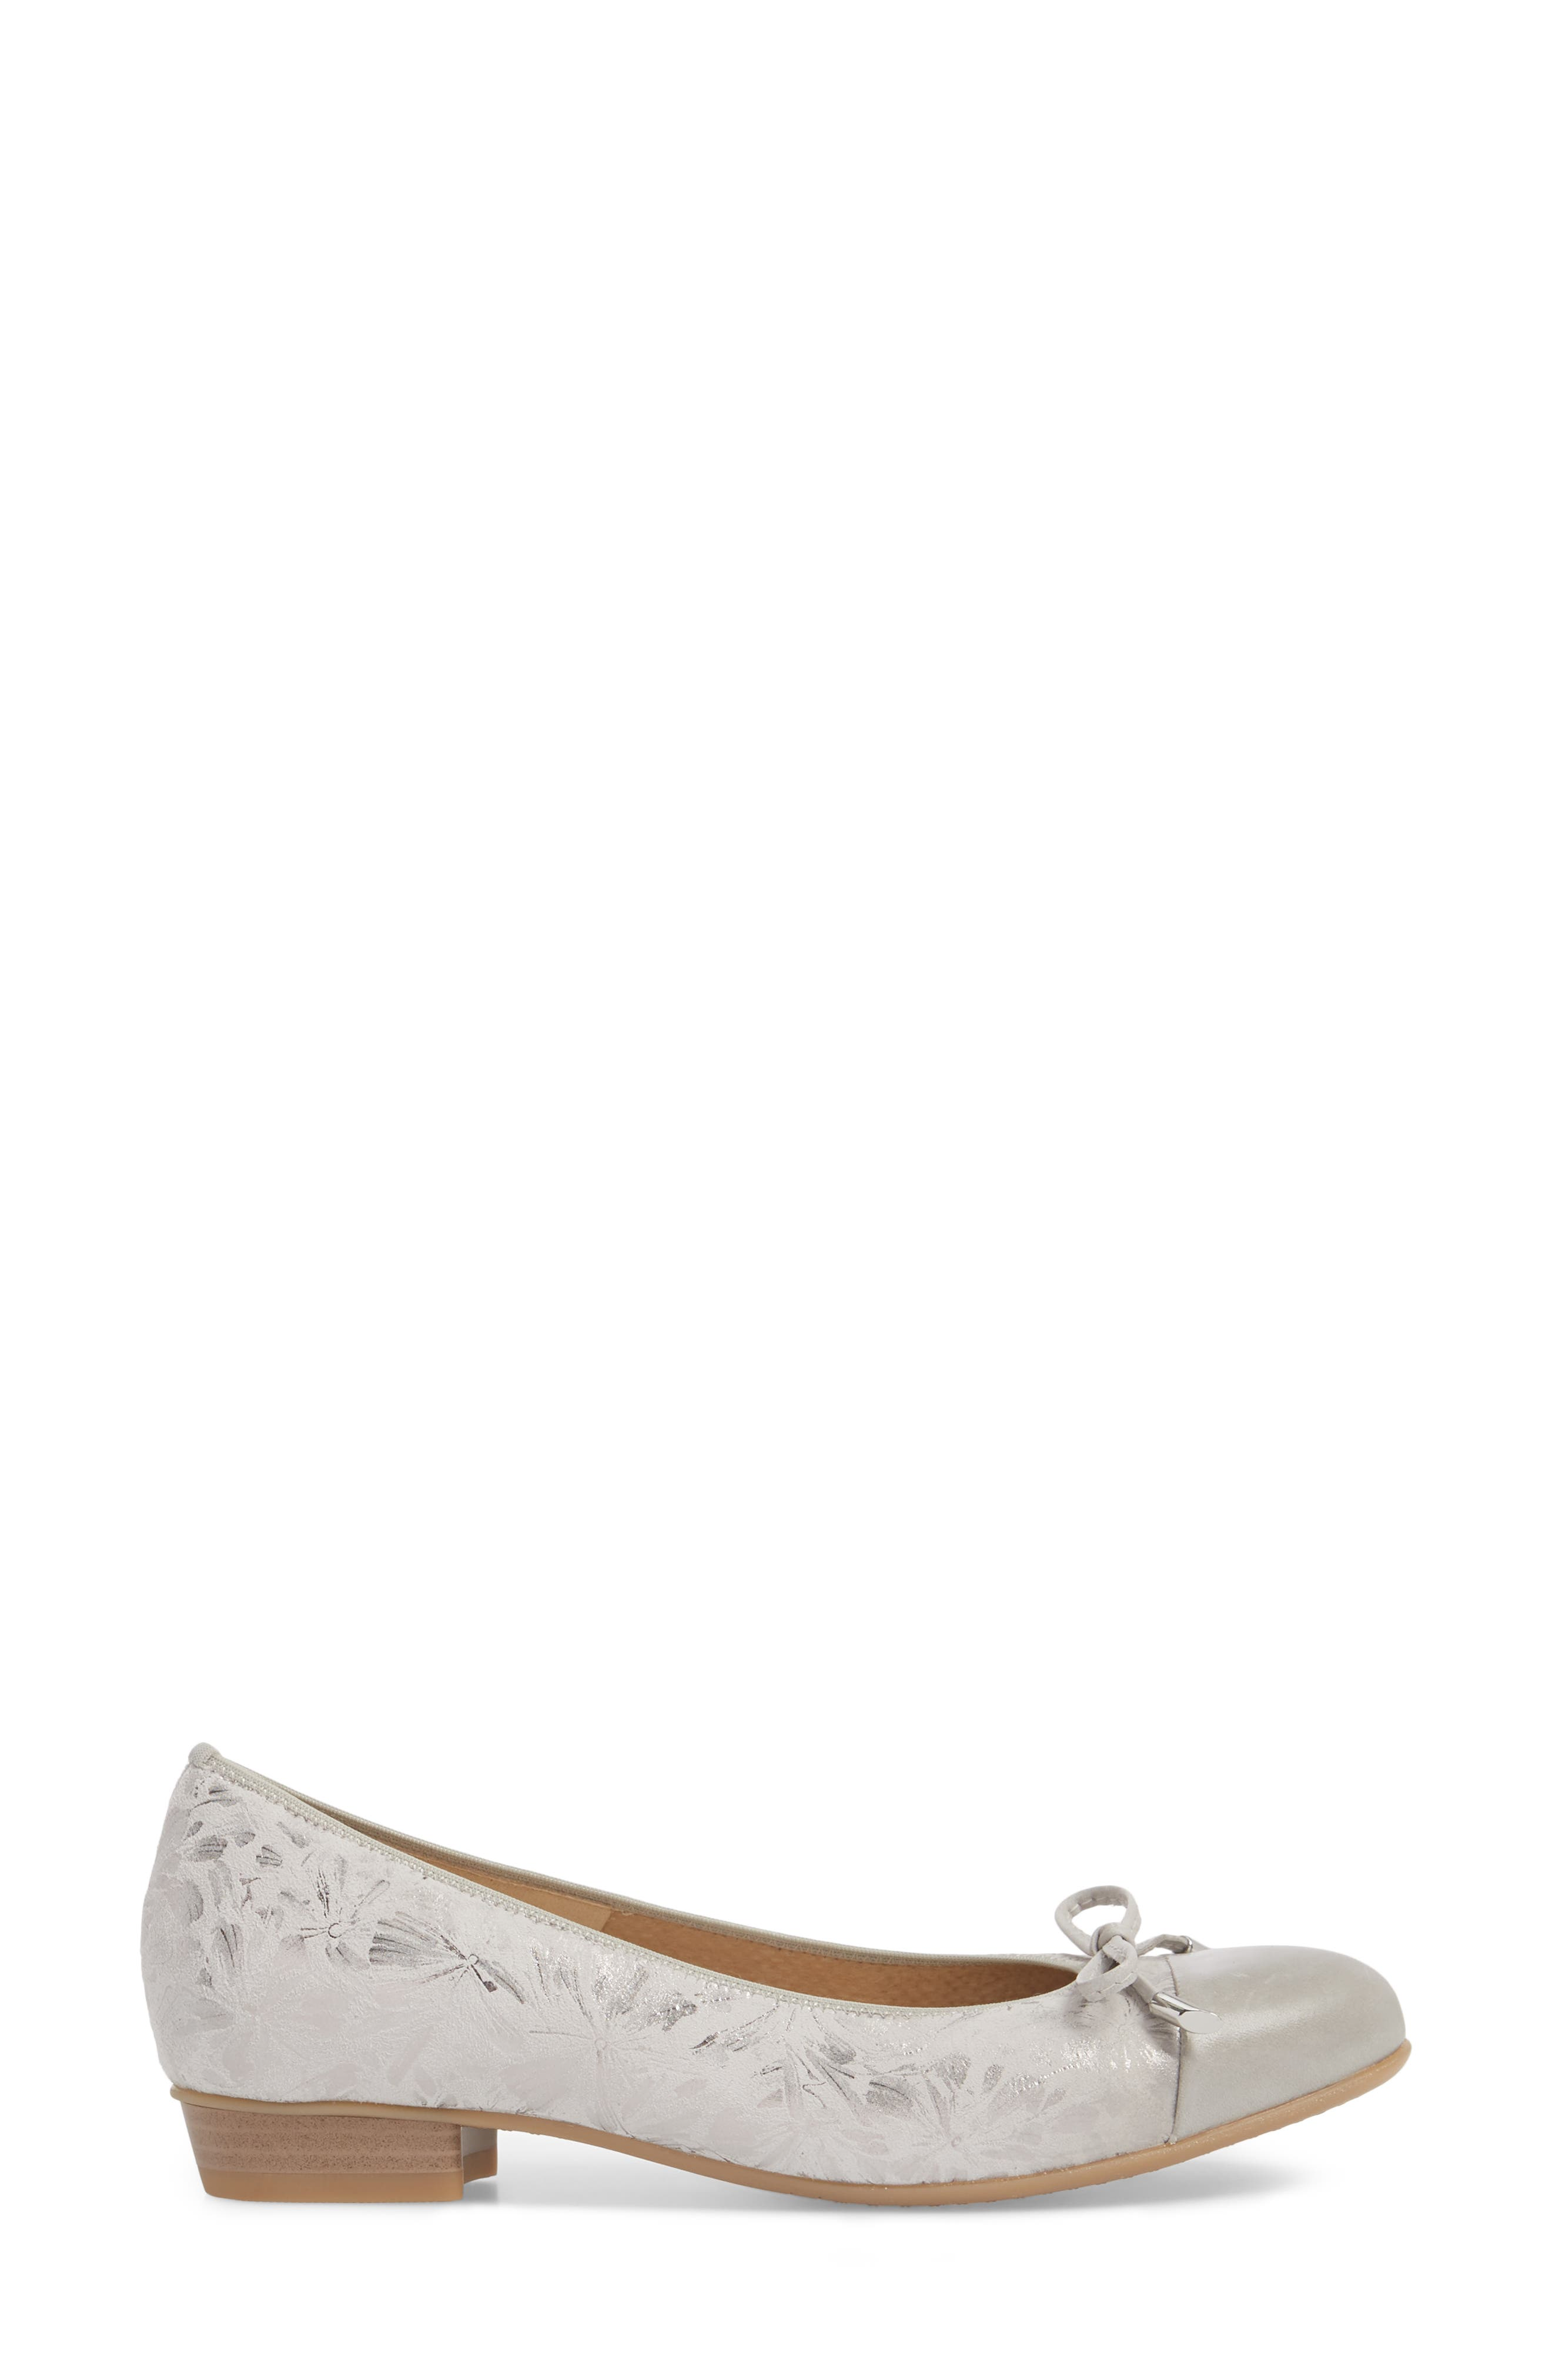 'Betty' Cap Toe Flat,                             Alternate thumbnail 3, color,                             Silver Leather